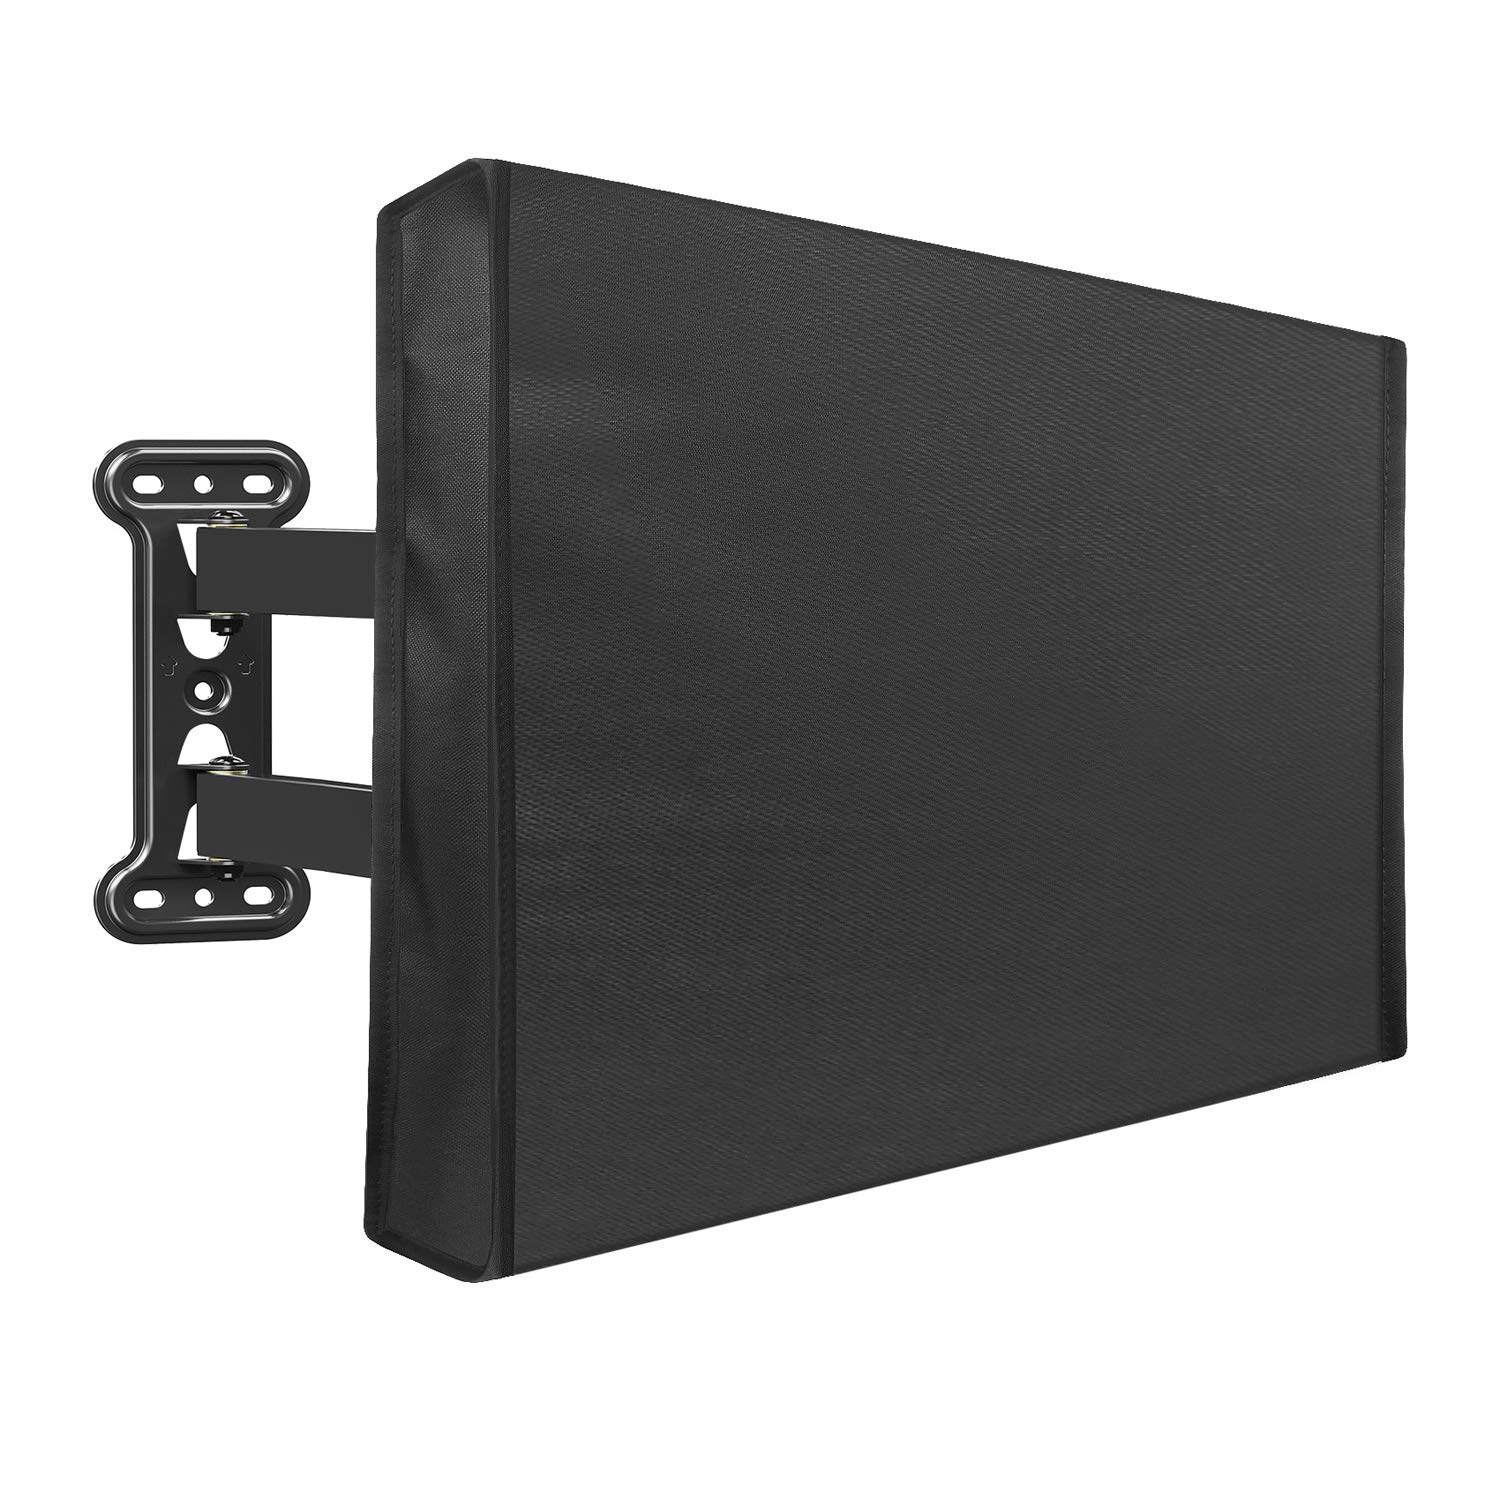 Mounting Dream Outdoor TV Cover for 53'' to 55'' TV with Fully Bottom Cover, Waterproof and Weatherproof TV Screen Protector for Outside TVs with Scratch Resistant Interior and Remote Control Pocket by Mounting Dream